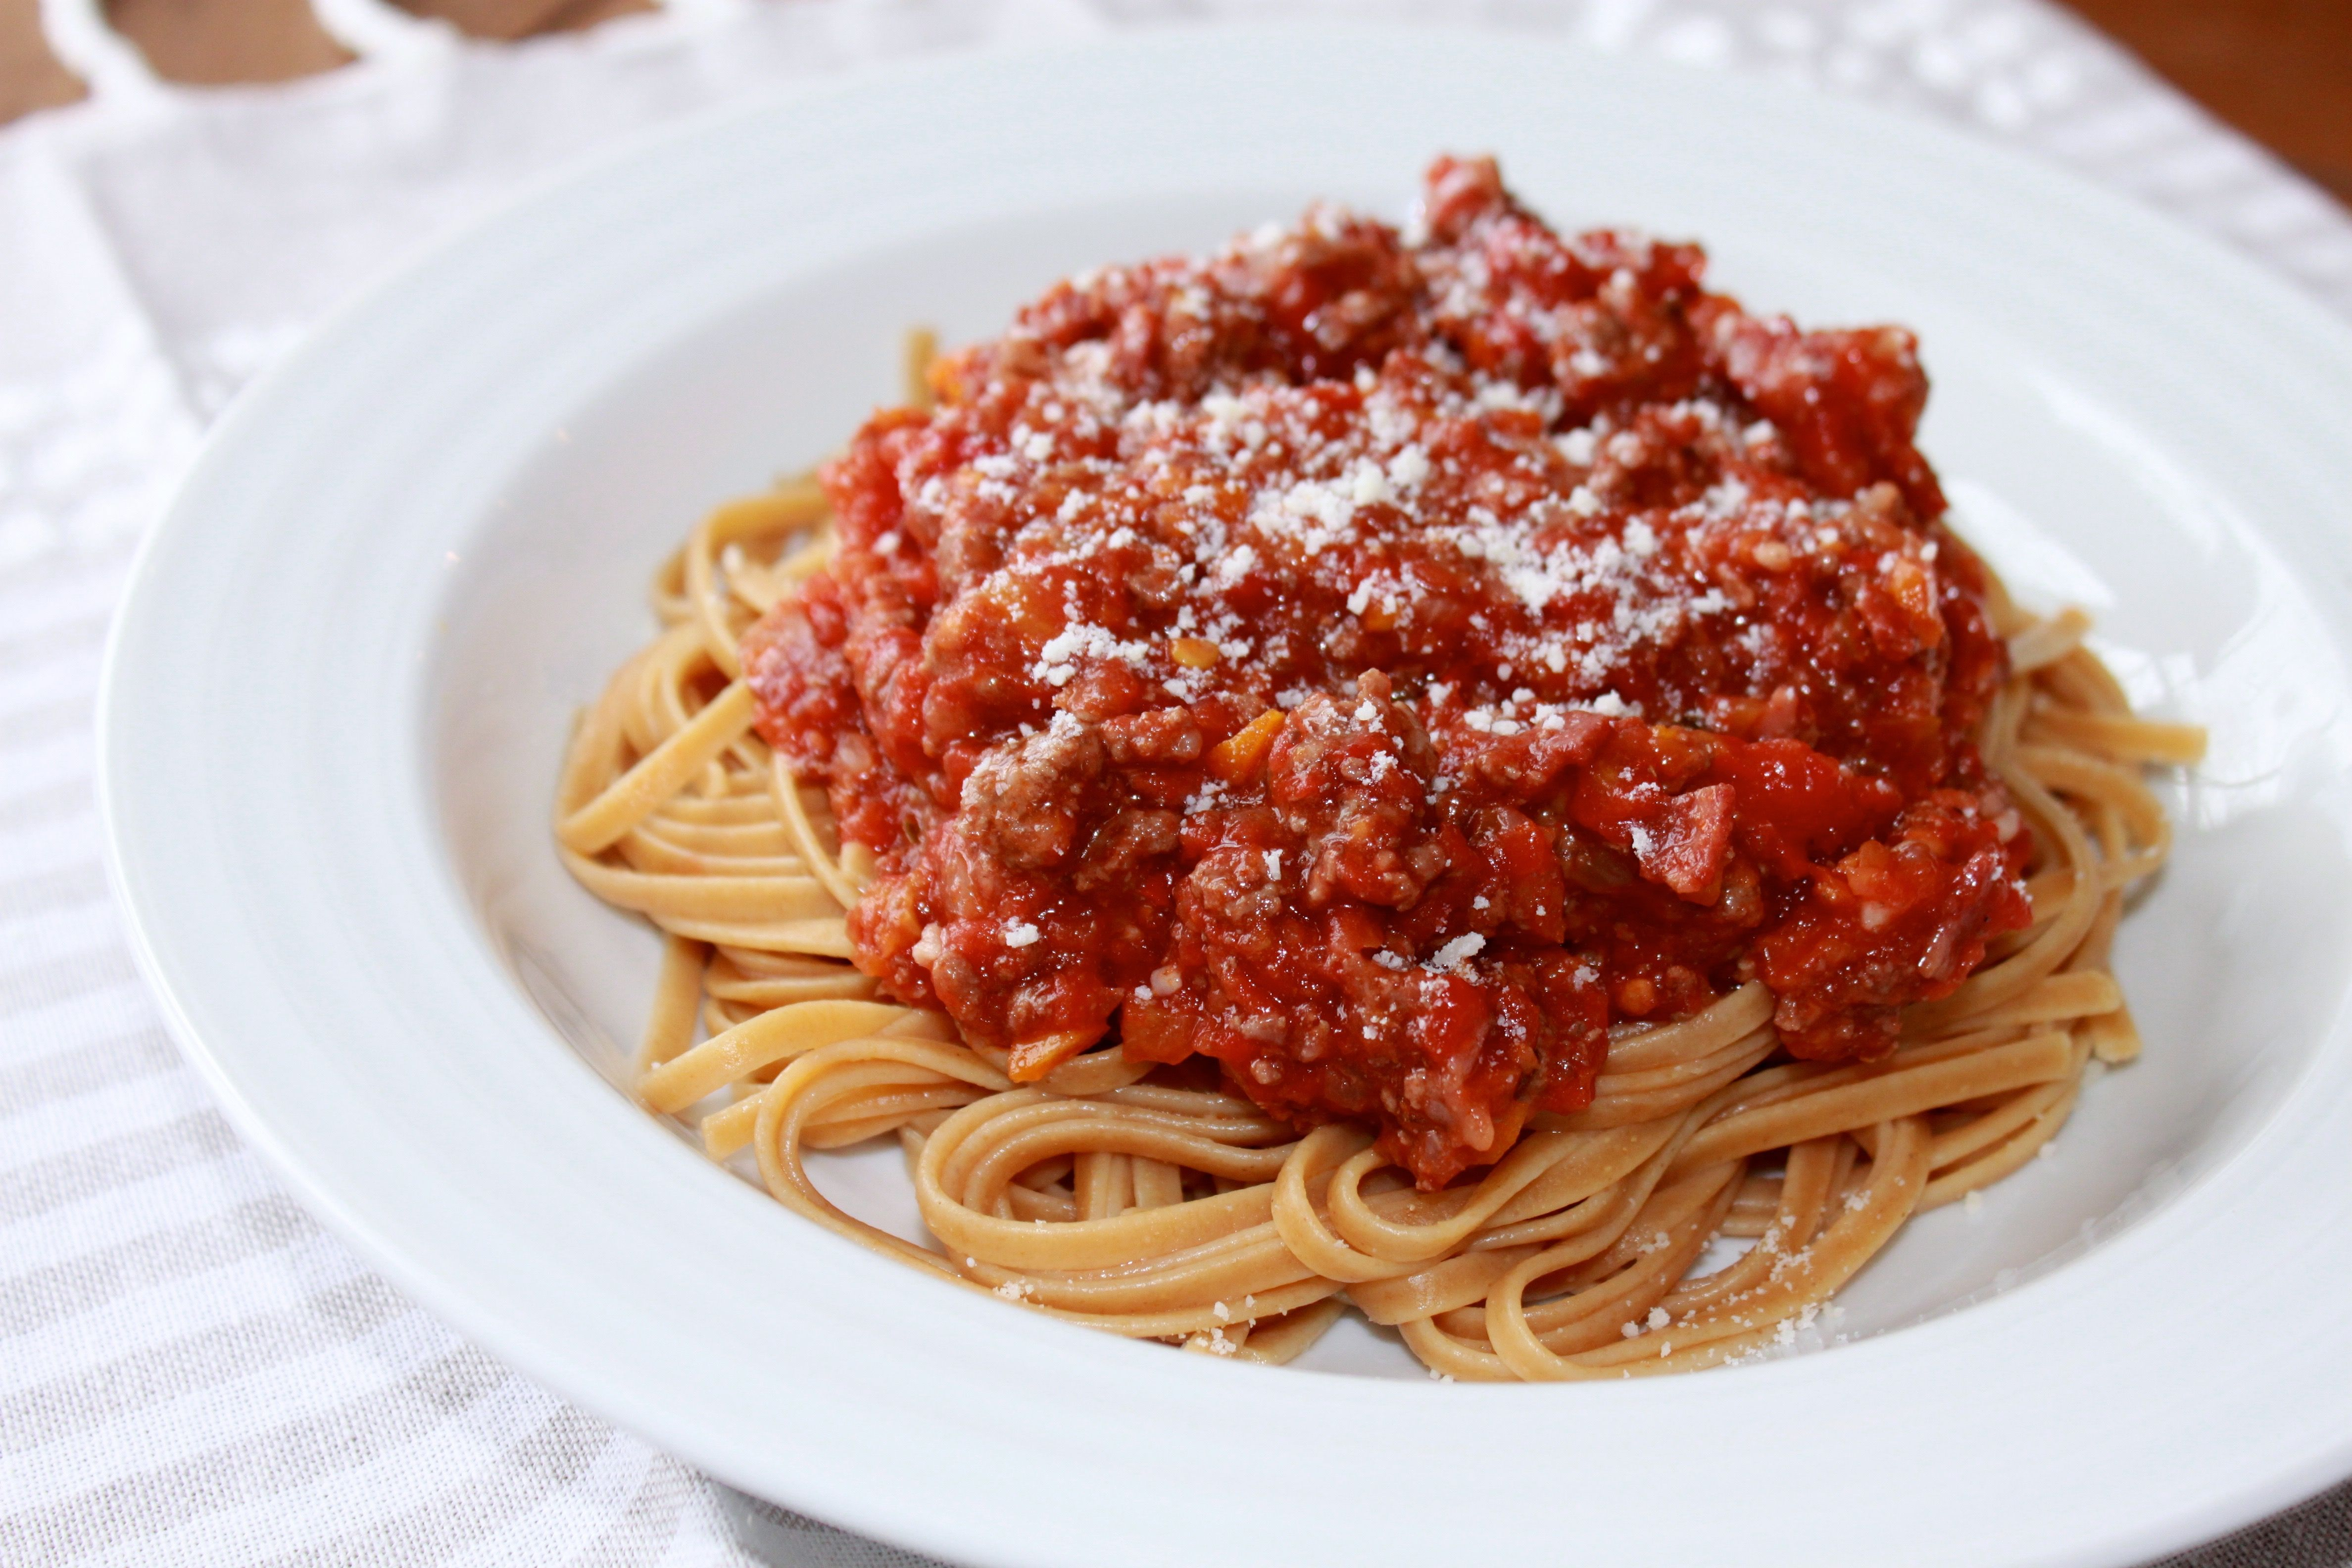 Best Ever Bolognese Sauce Recipe Stovetop Slow Cooker Instant Pot Recipe In 2020 Bolognese Sauce Recipe Sauce Recipes Bolognese Sauce